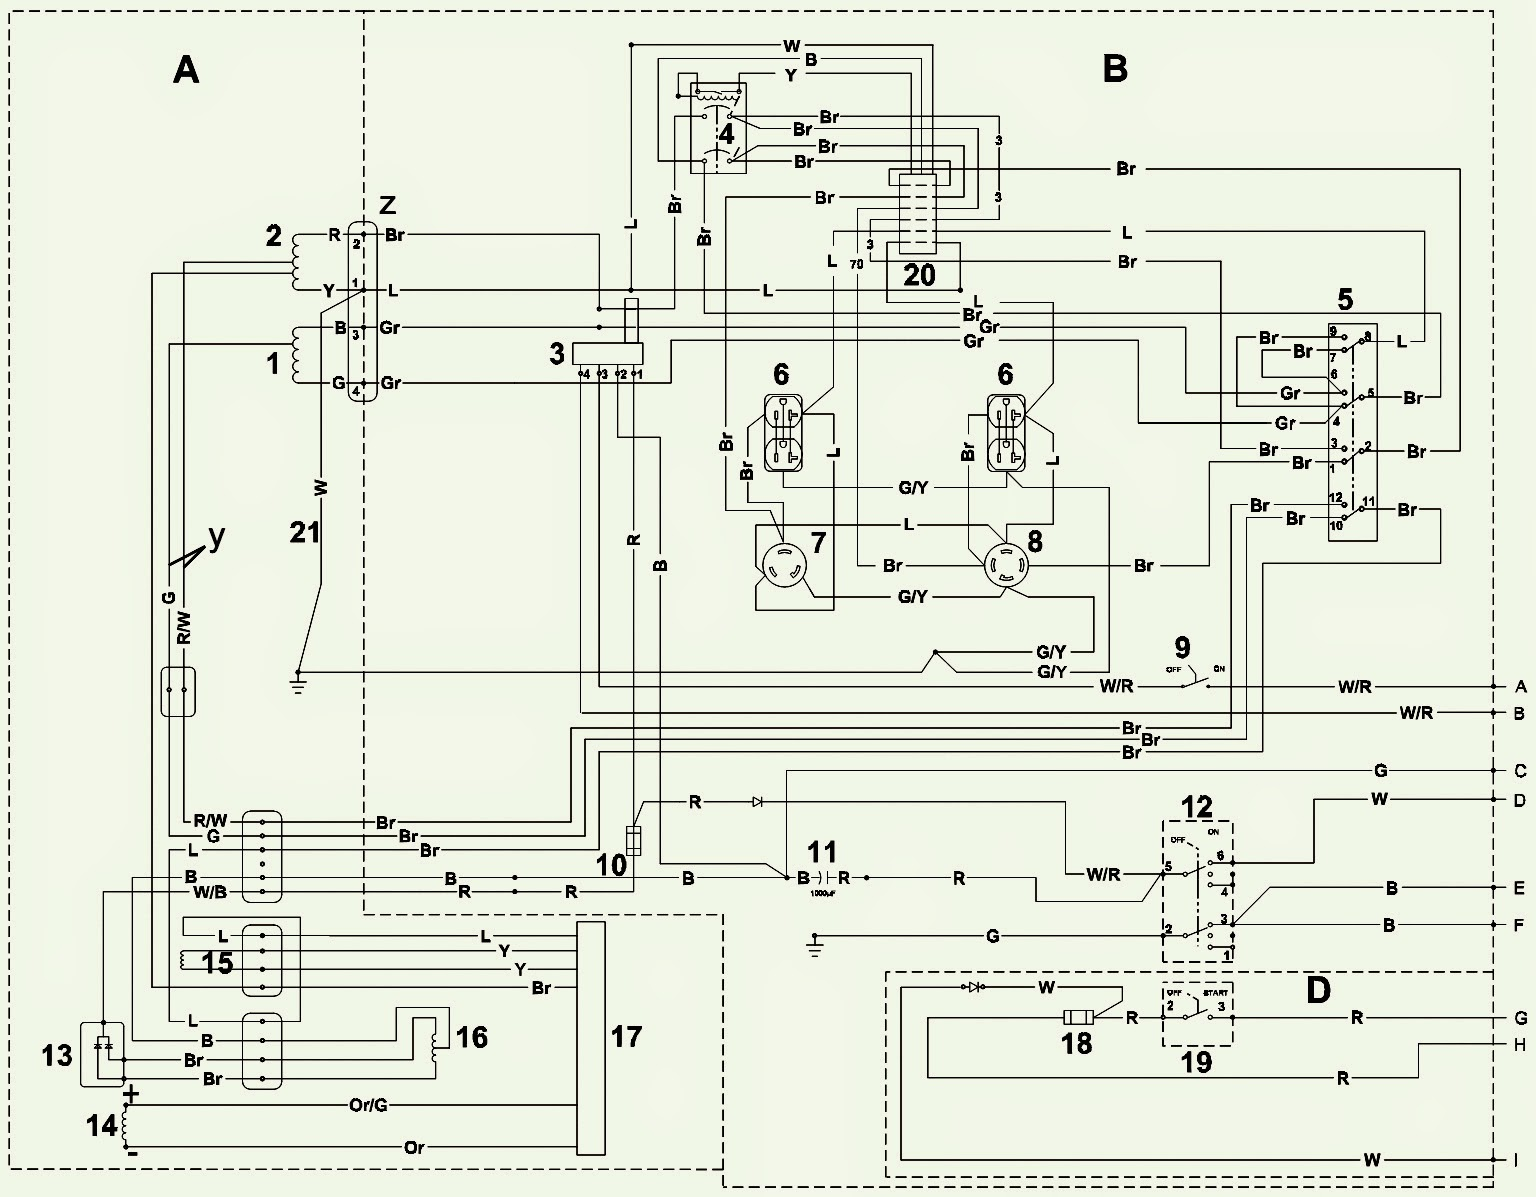 medium resolution of for troubleshooting a malfunctioning anti after fire schema you ll need to rule